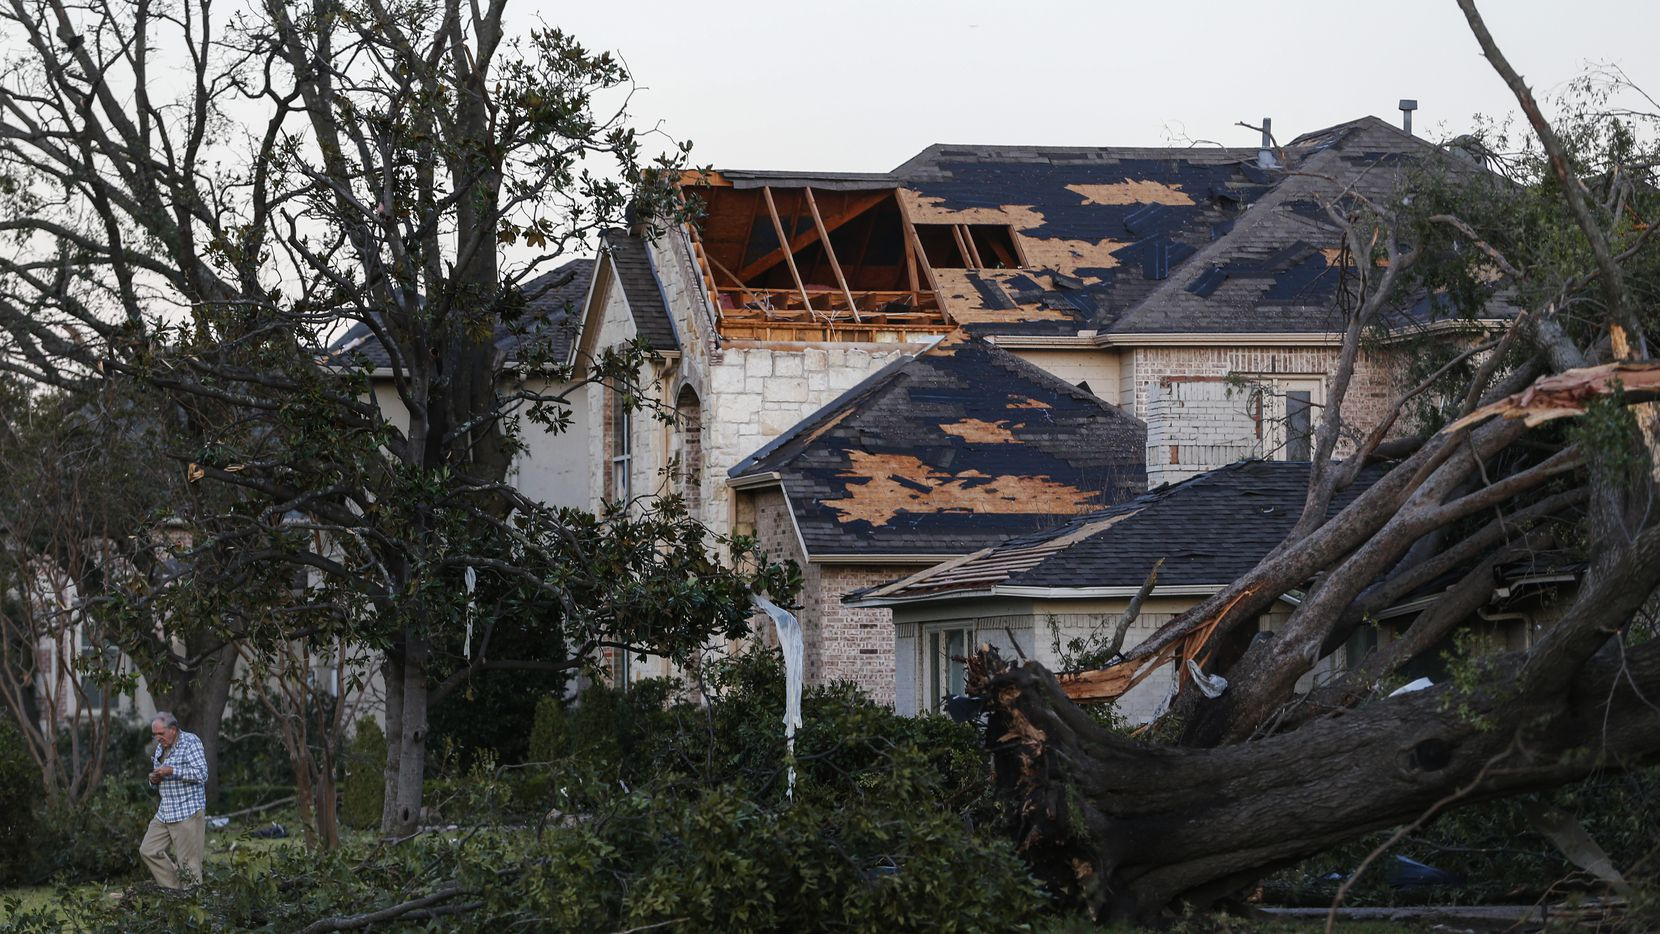 As the sun rises, homeowners emerge to survey damage from a tornado the night before near Northcrest Road and Crestline Avenue in Dallas on Oct. 21, 2019.